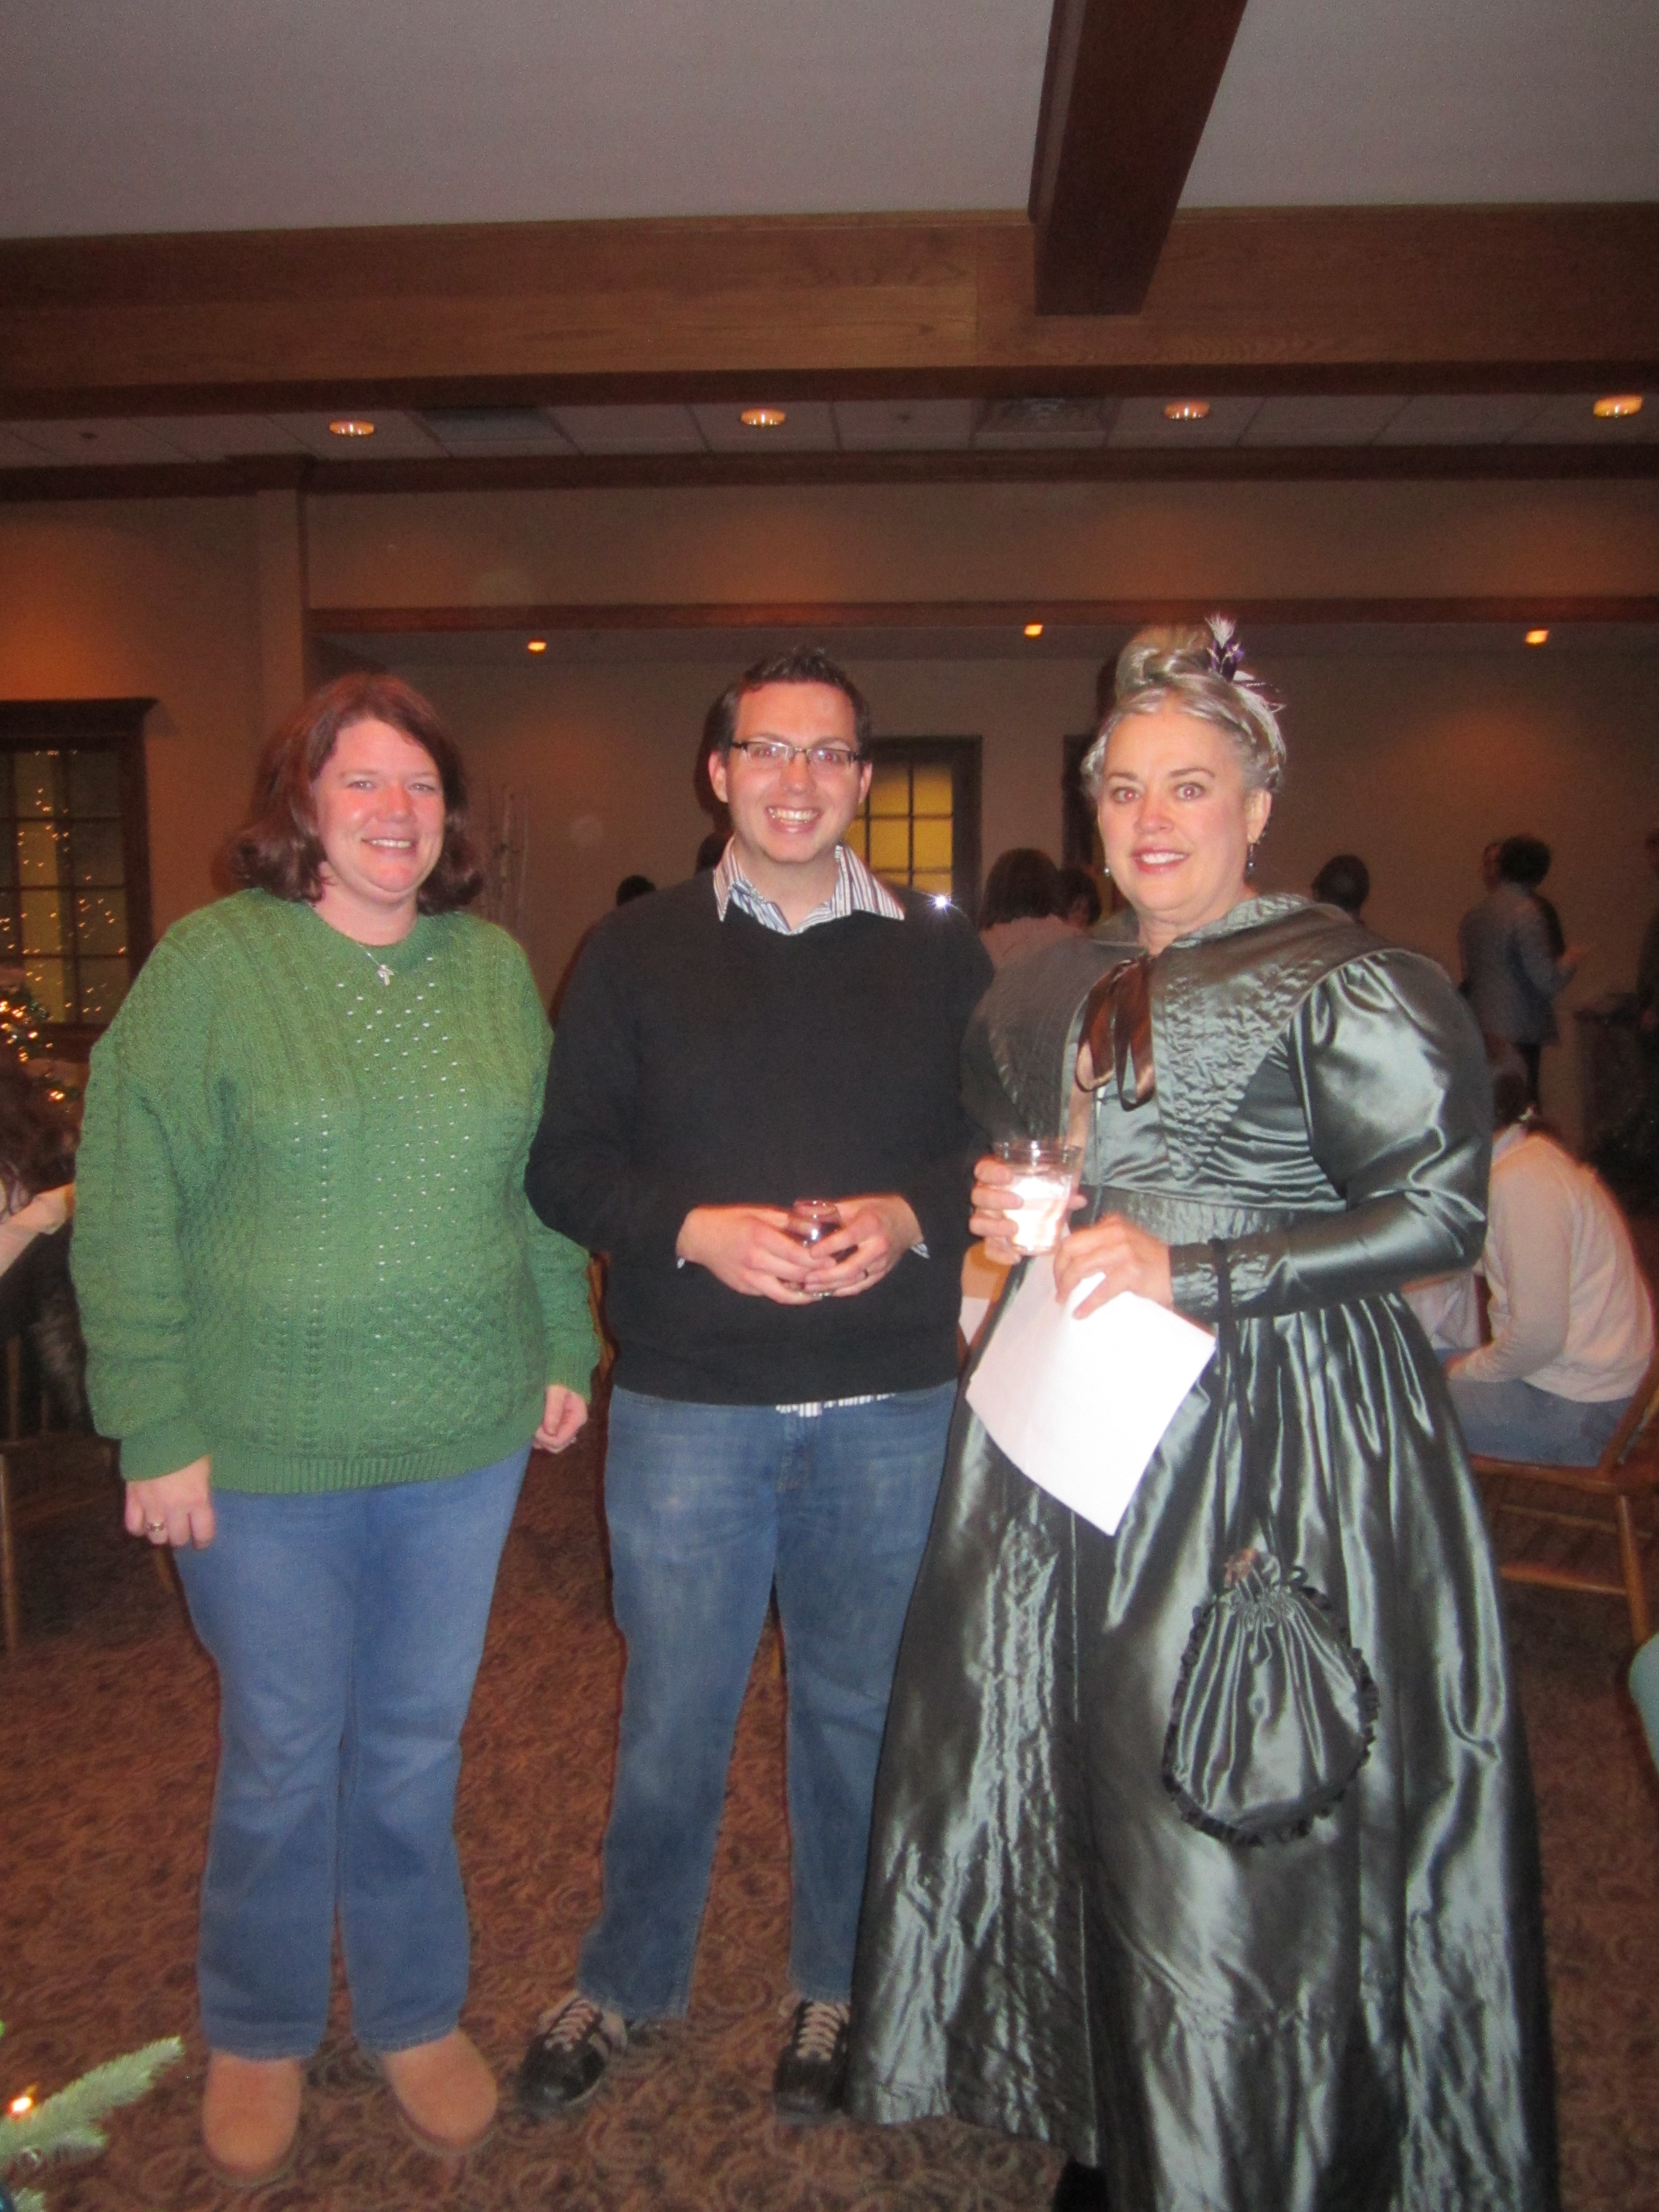 Guests, including Meghan Flagel and Scott Bardash, attended Holiday Cheer and visited with volunteers from the 19th century, including Susie Alexander.